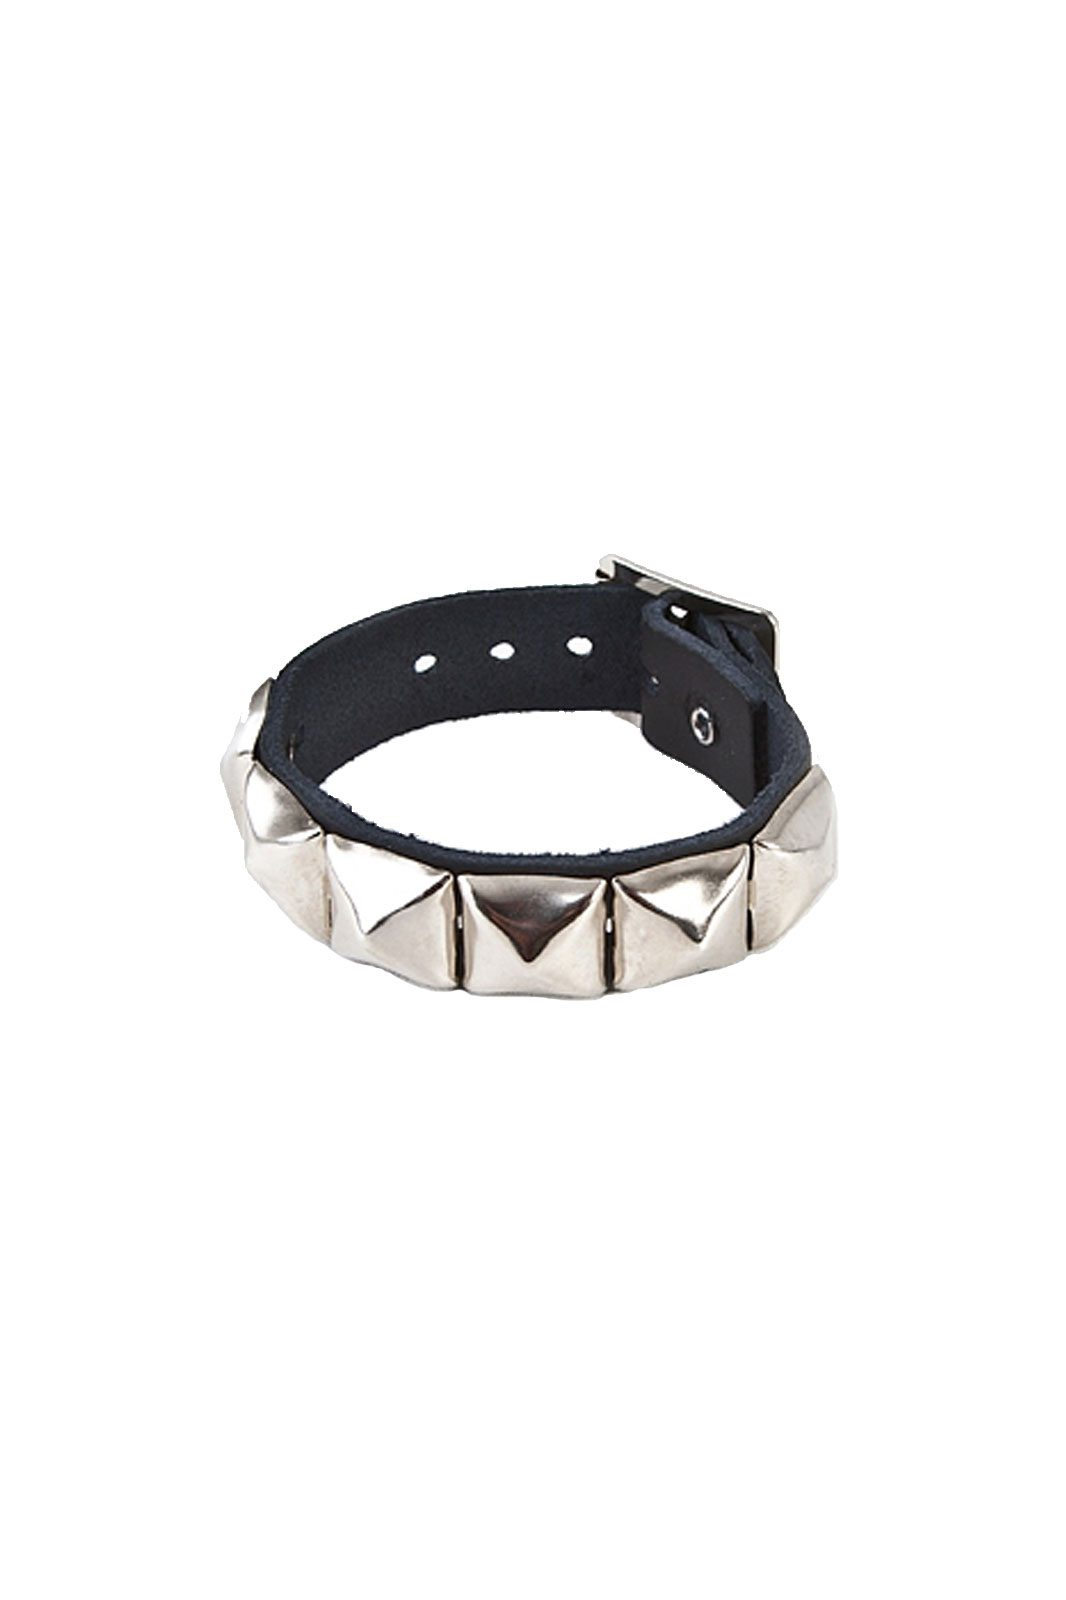 randomizer 1 row pyramid wristband black